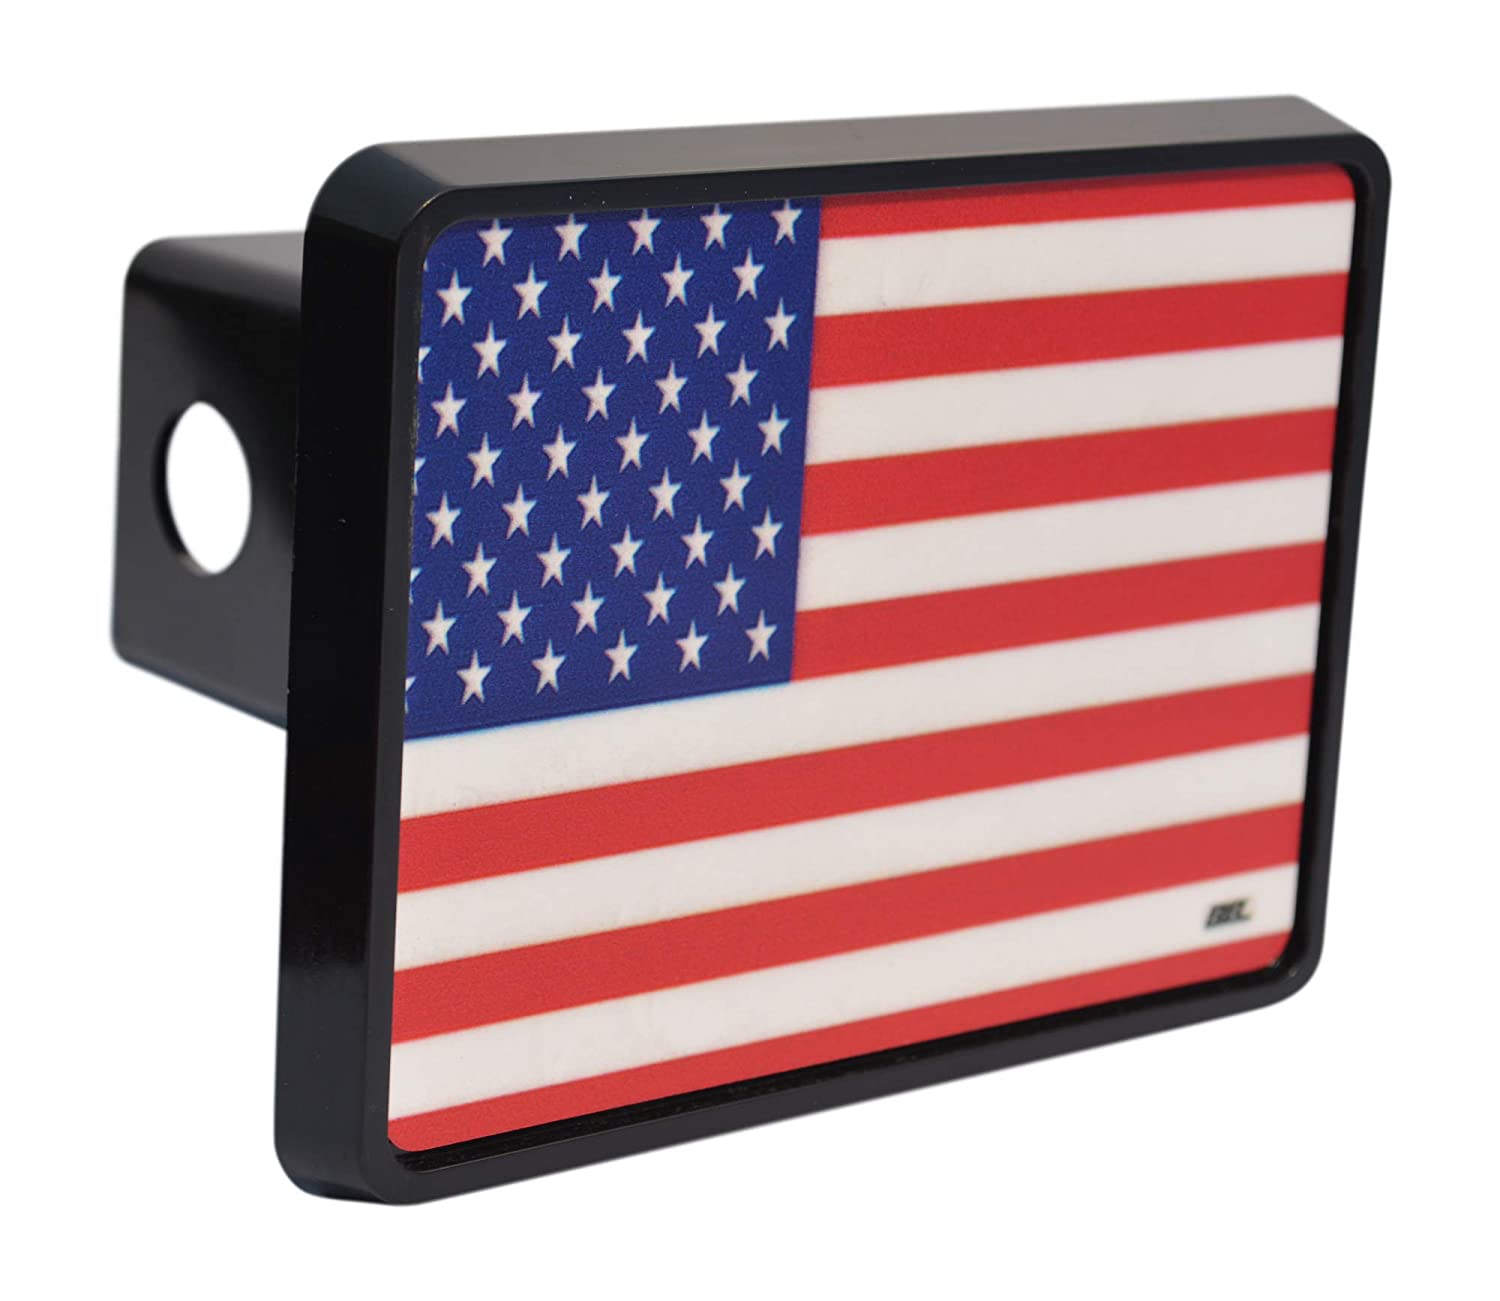 Rogue River Tactical USA American Flag Trailer Hitch Cover Plug US Patriotic Old Glory VV294